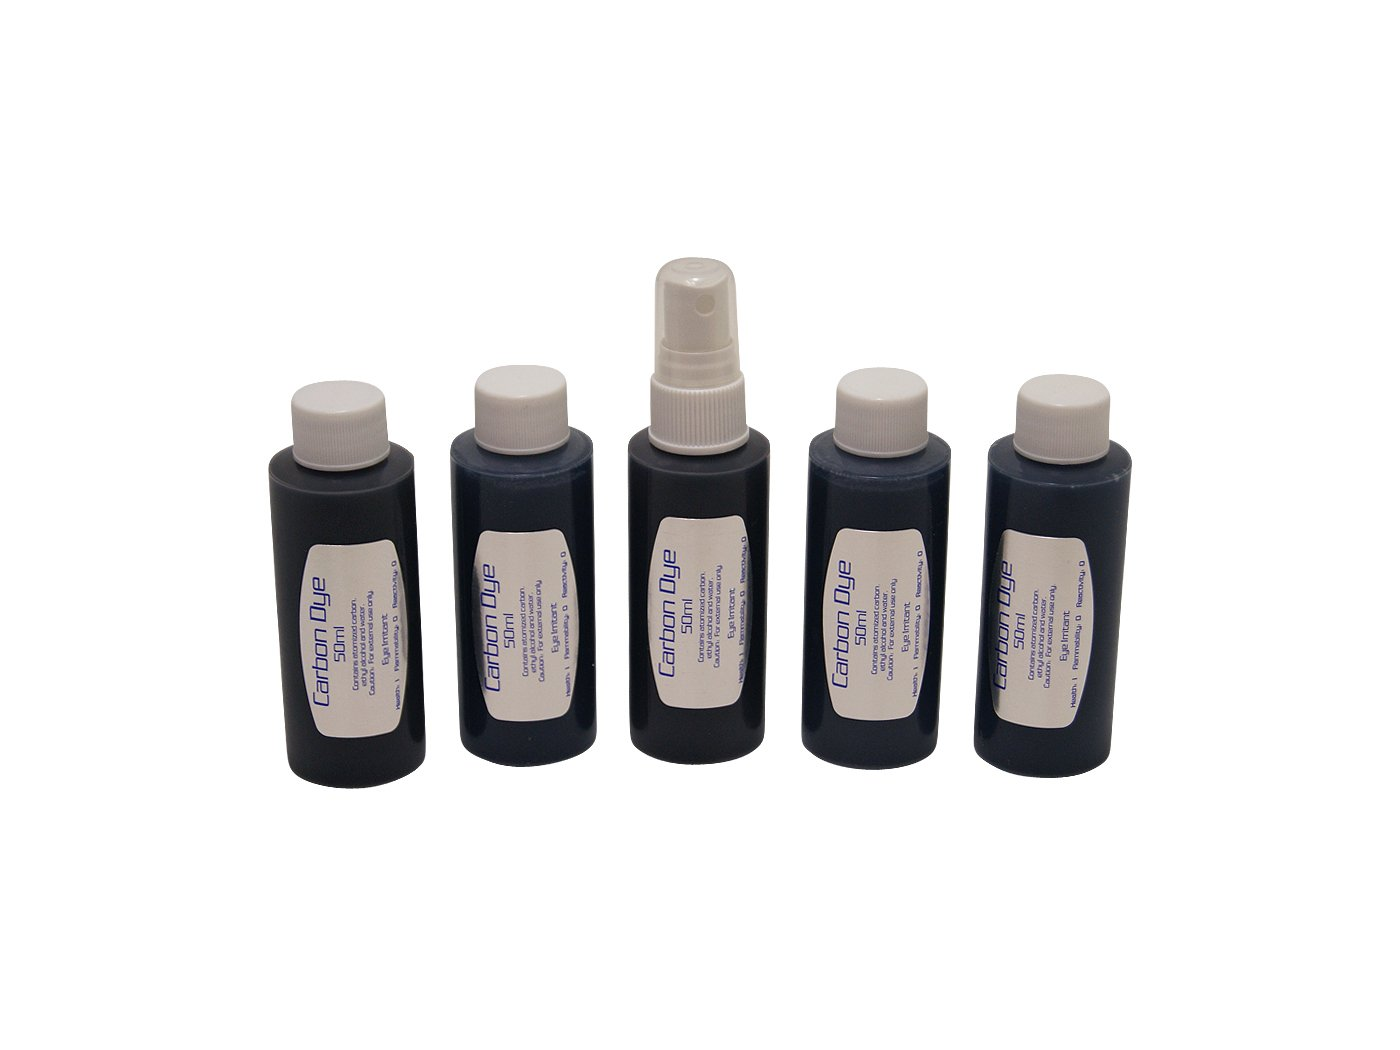 Carbon Dye 250ml for Laser and IPL Permaent Hair Removal Machines, Systems, Devices